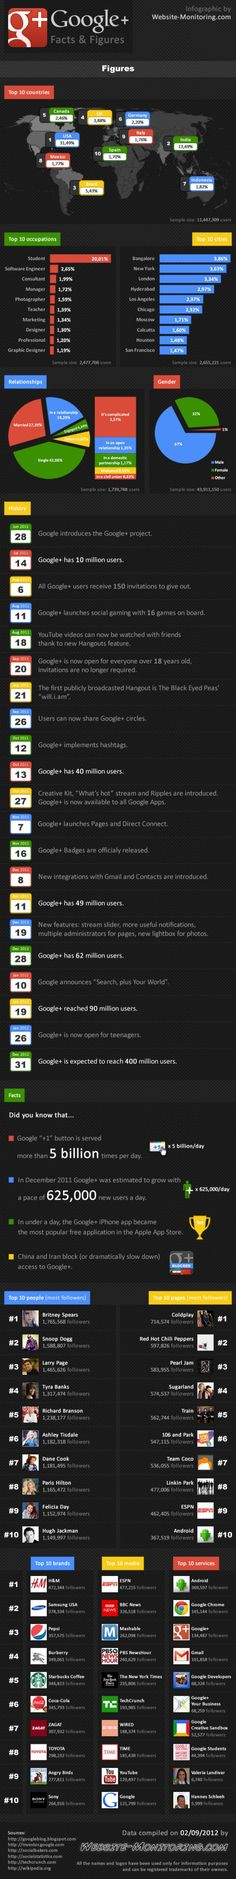 Everything you need to know about Google+.